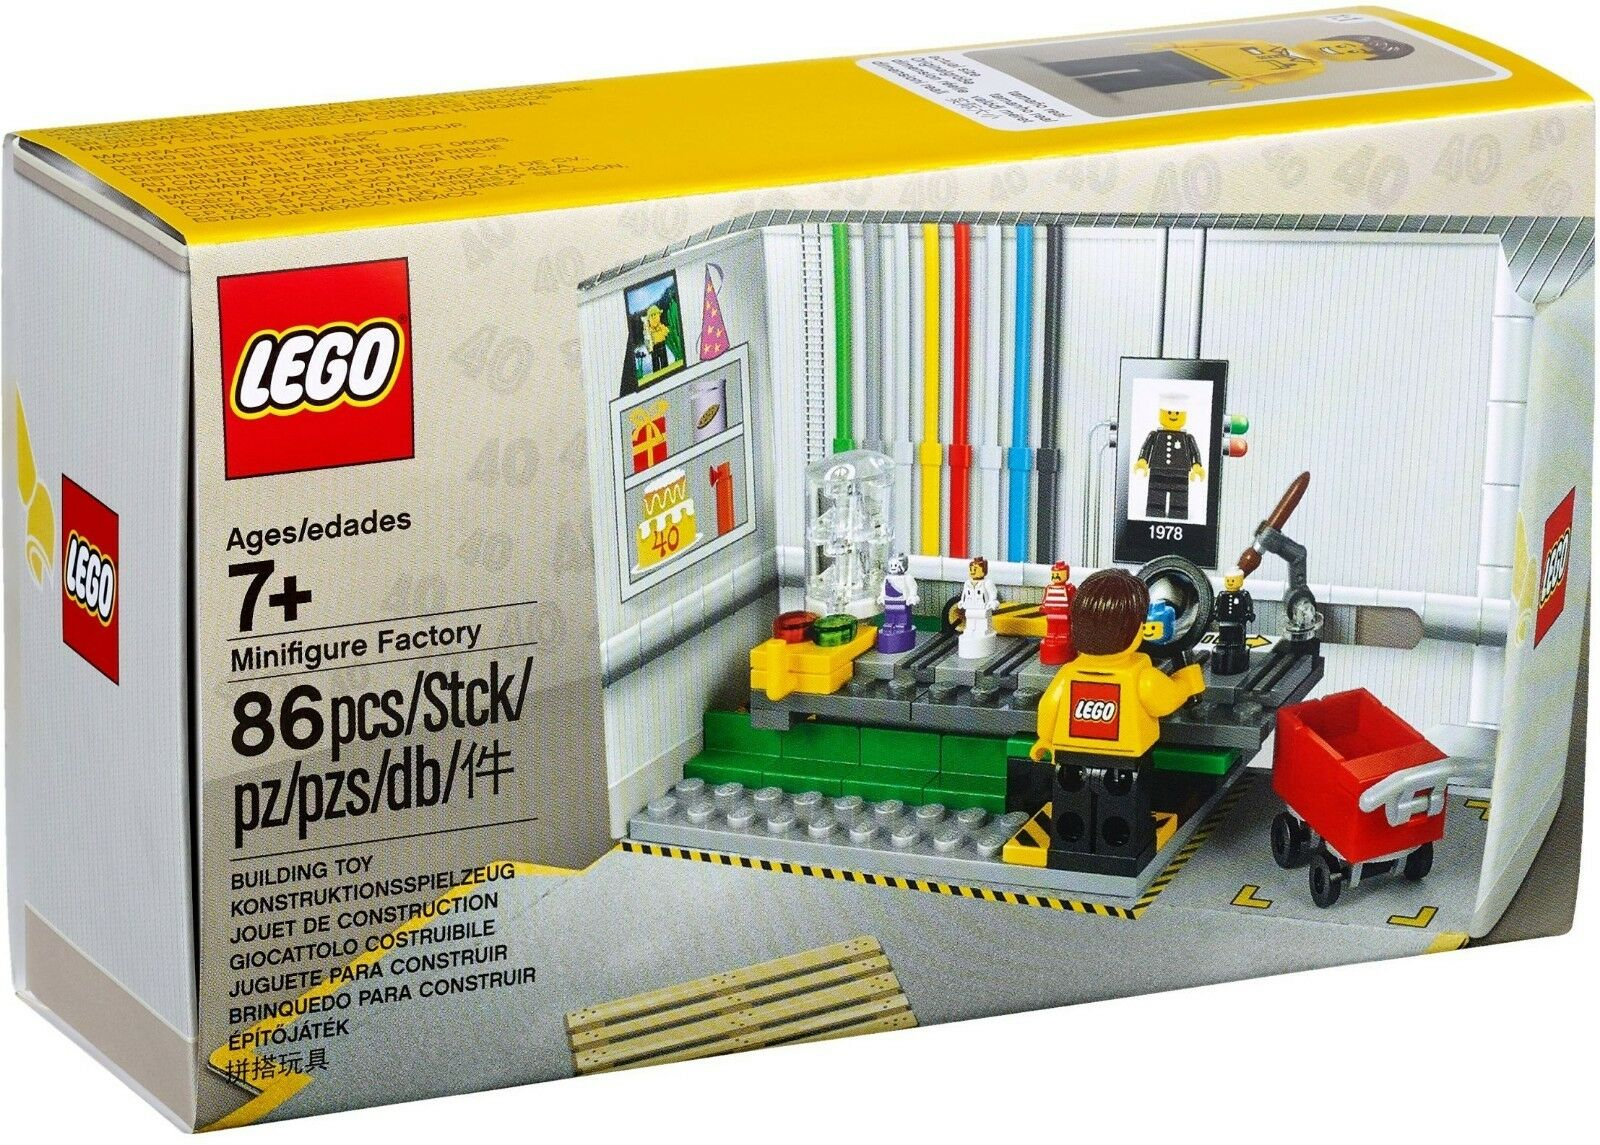 LEGO Minifigure Factory - 5005358 - Brand new in sealed box